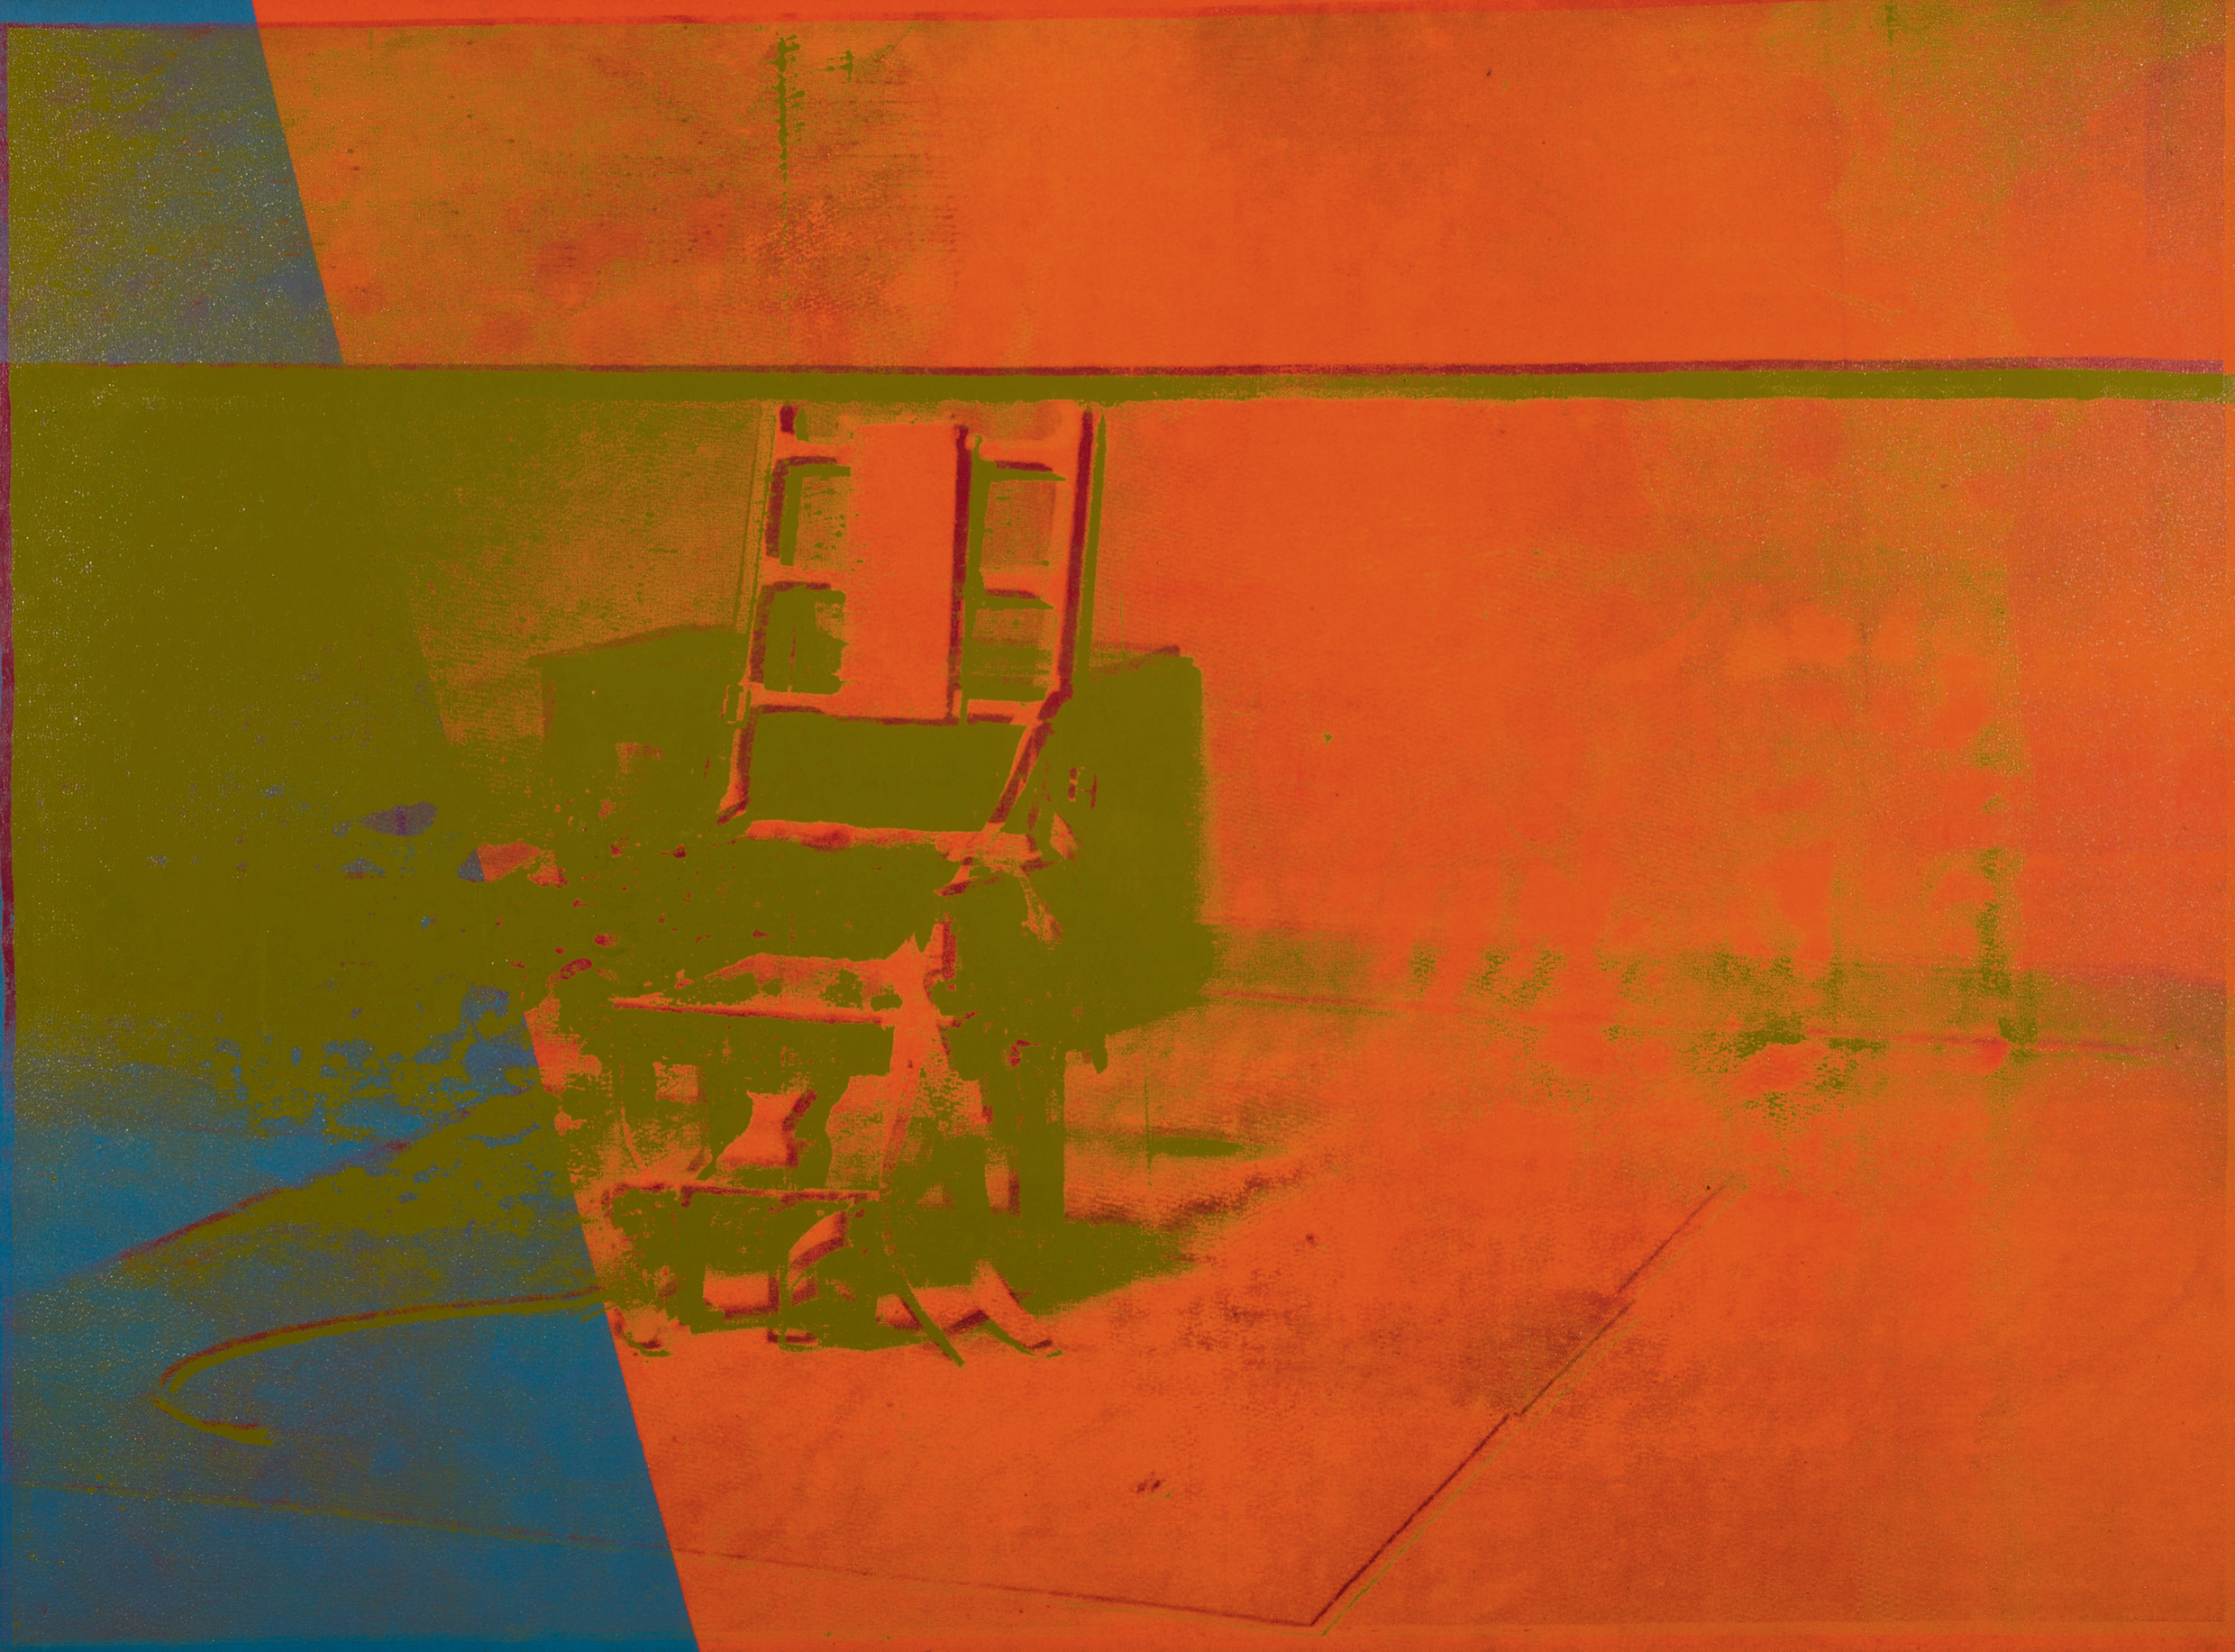 Electric chair andy warhol - Electric Chair Andy Warhol 8